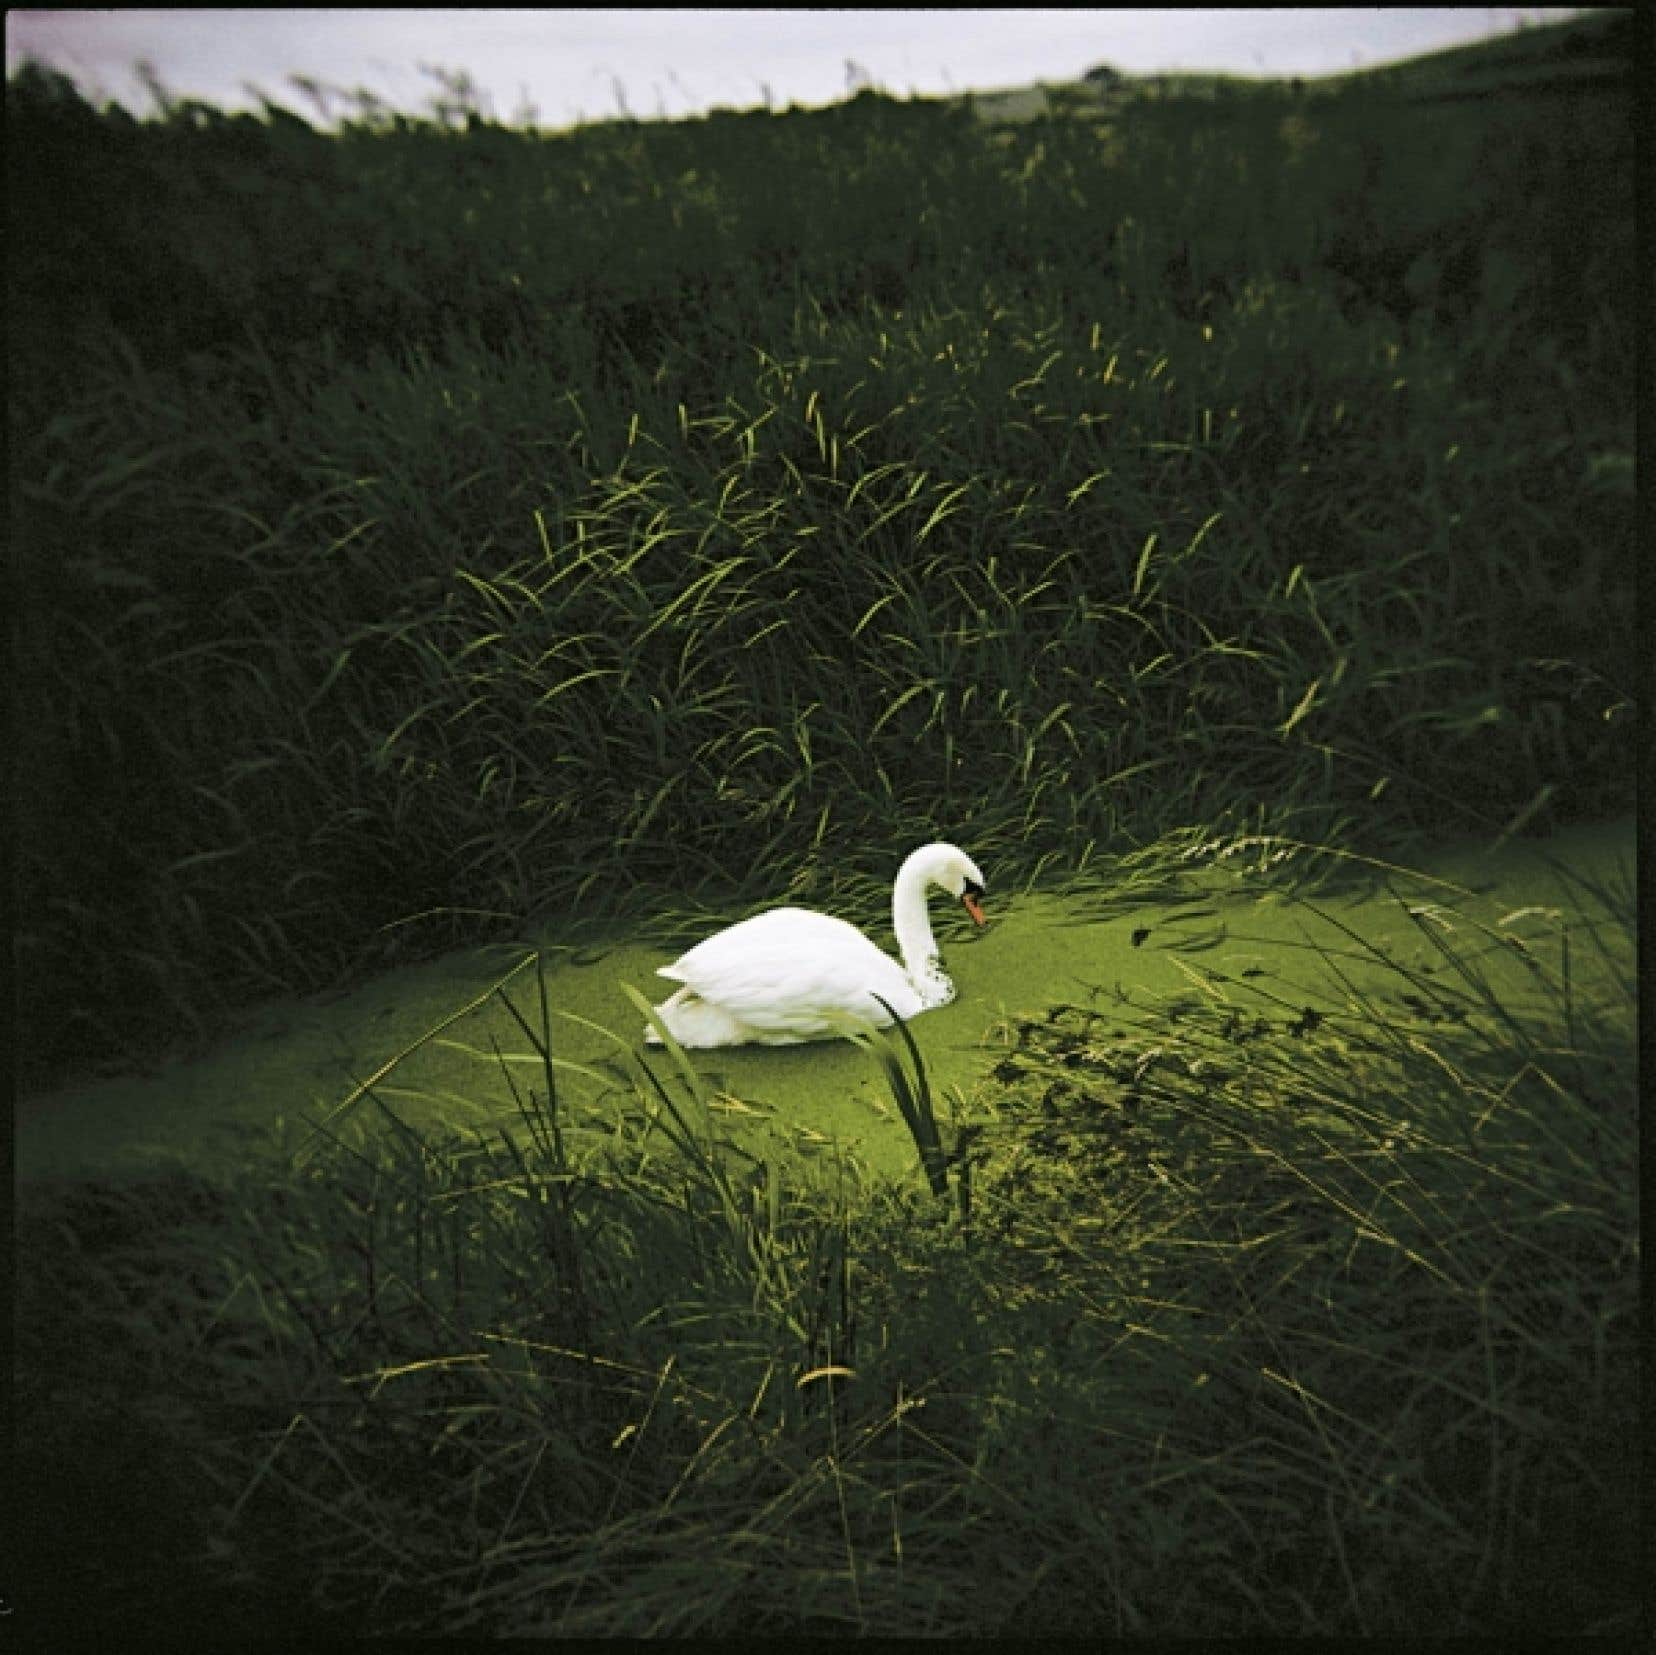 Ce cygne symbolise la mort de Virginia Woolf.<br />